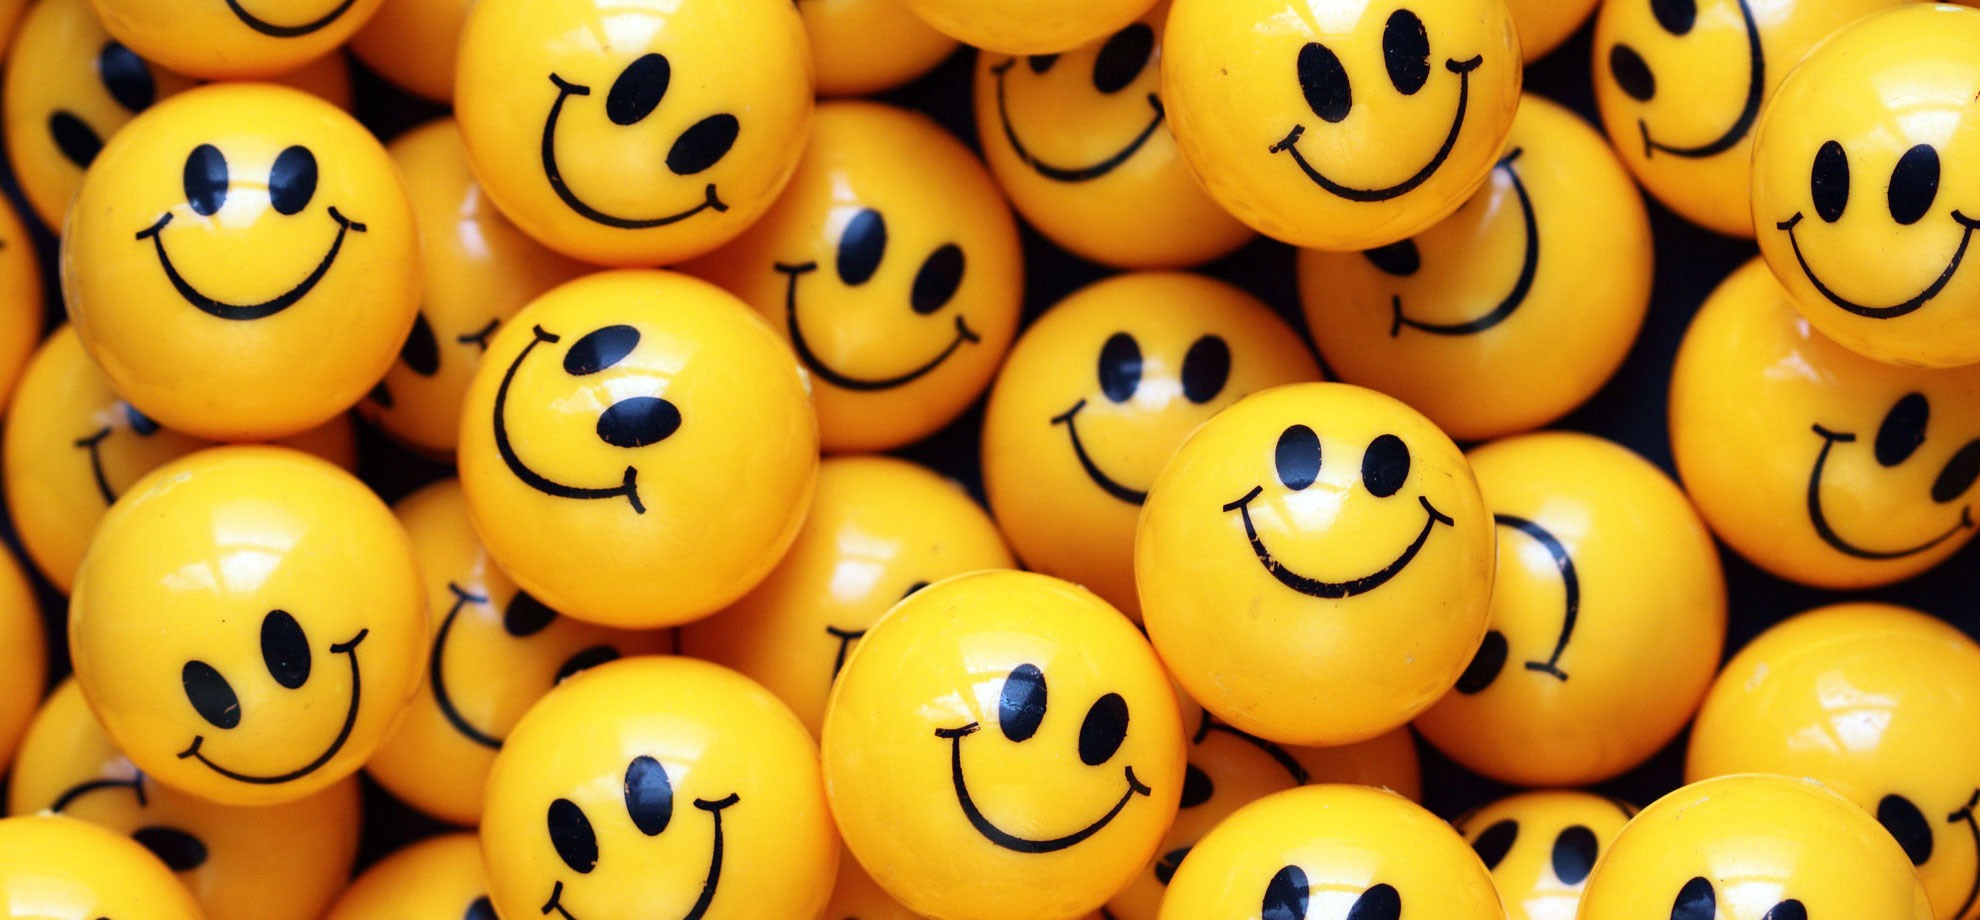 6 Great Reasons Why You Should Smile More Often… | The Positive Project